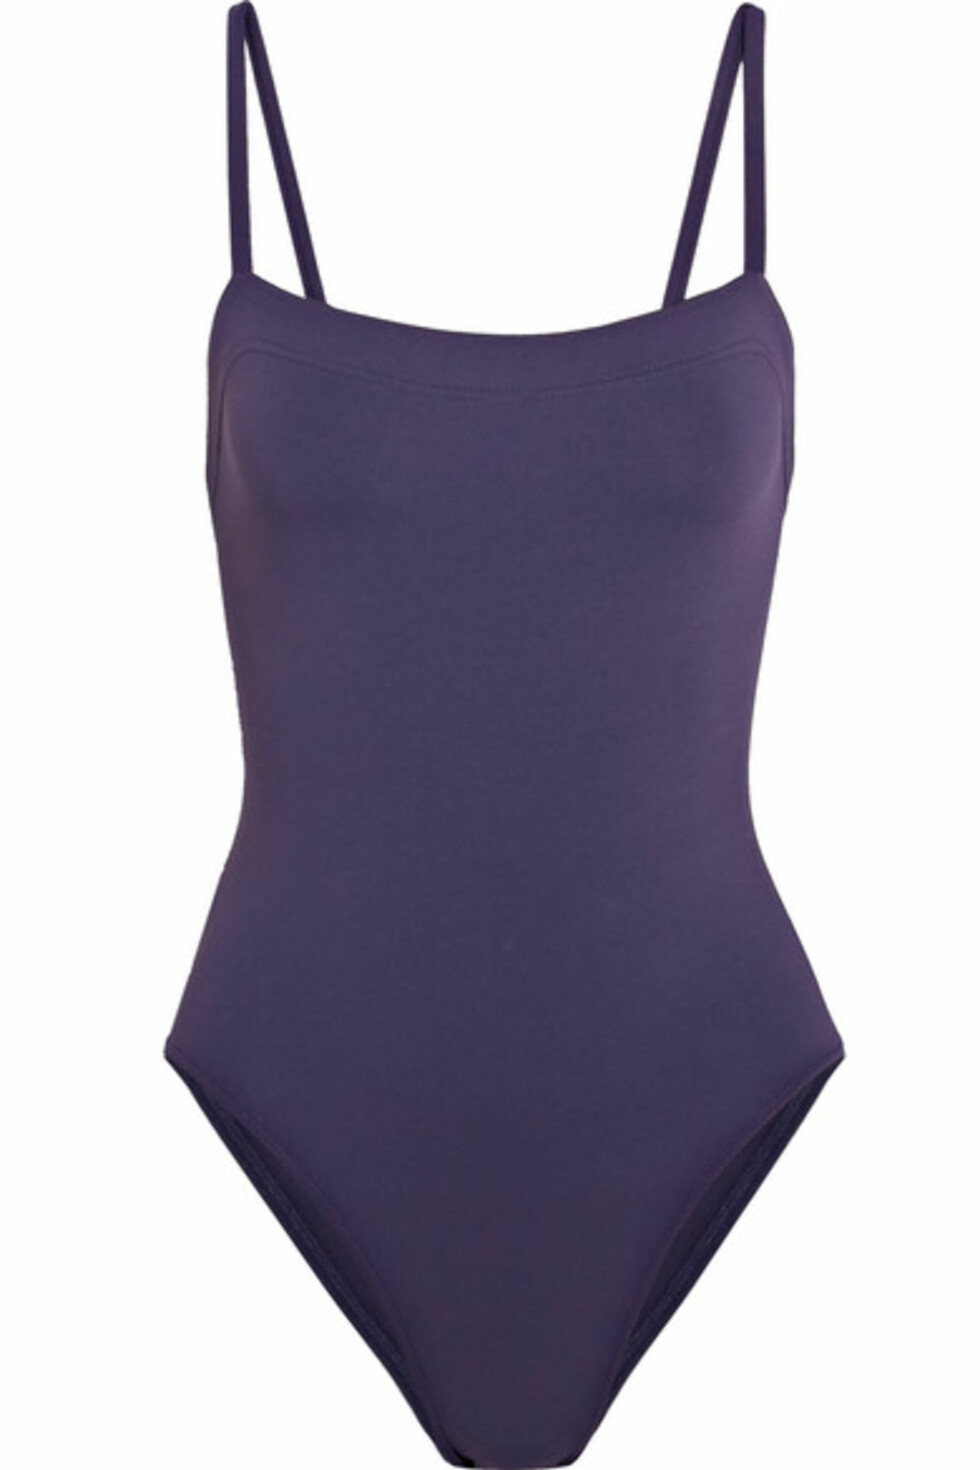 Badedrakt fra Eres |2550,-| https://www.net-a-porter.com/no/en/product/909870/eres/les-essentiels-aquarelle-swimsuit